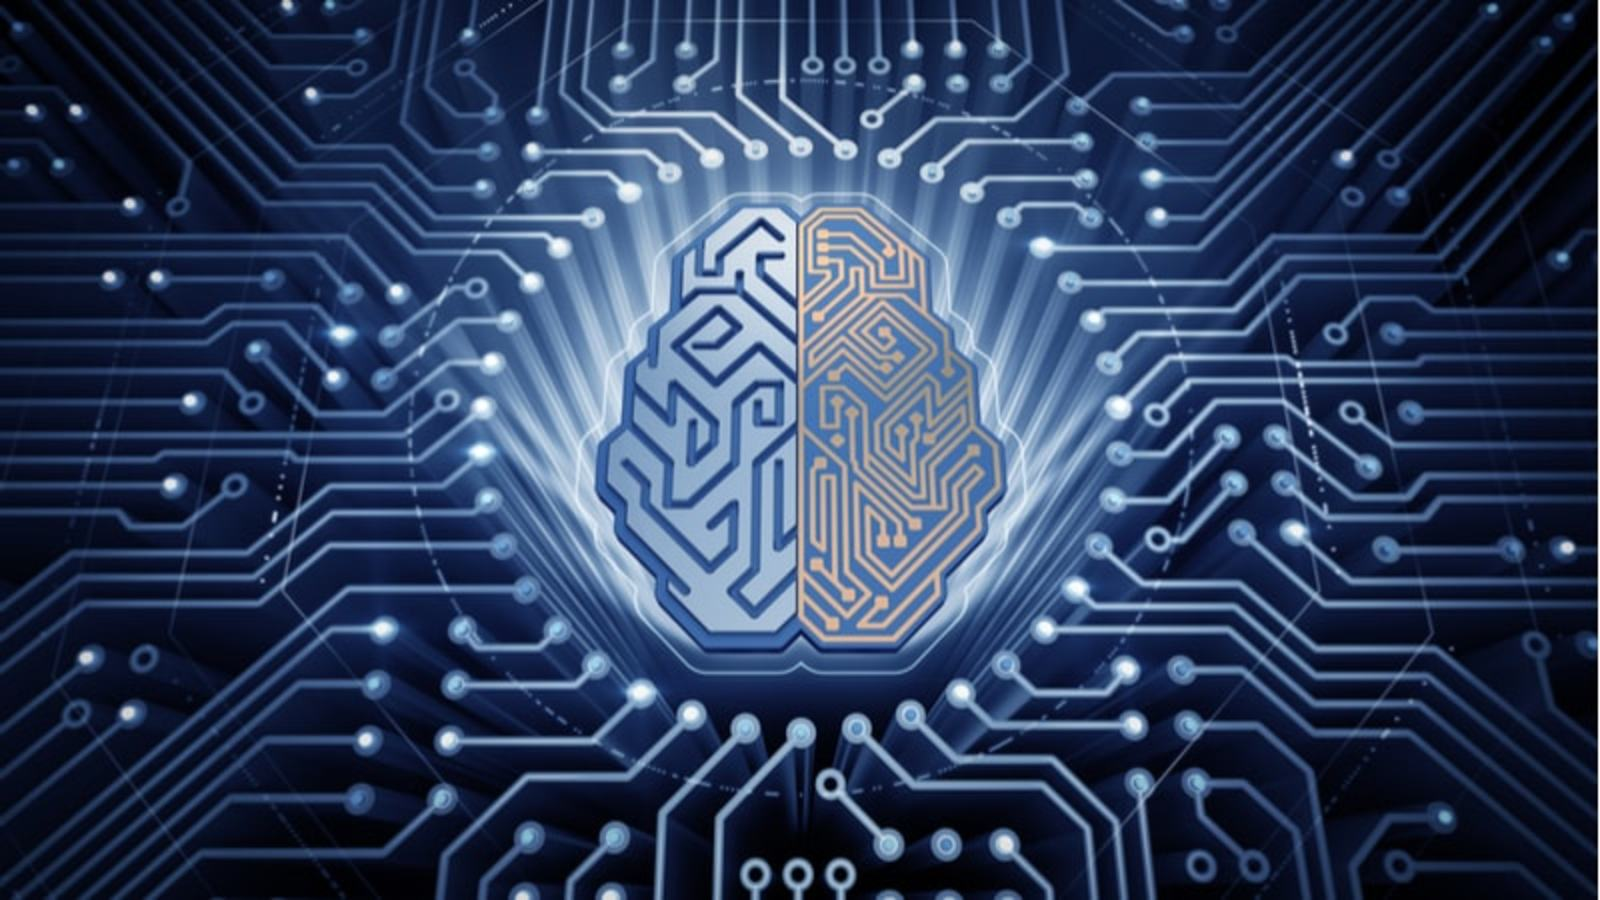 Machine Intelligence and Learning from Experience (MILE)